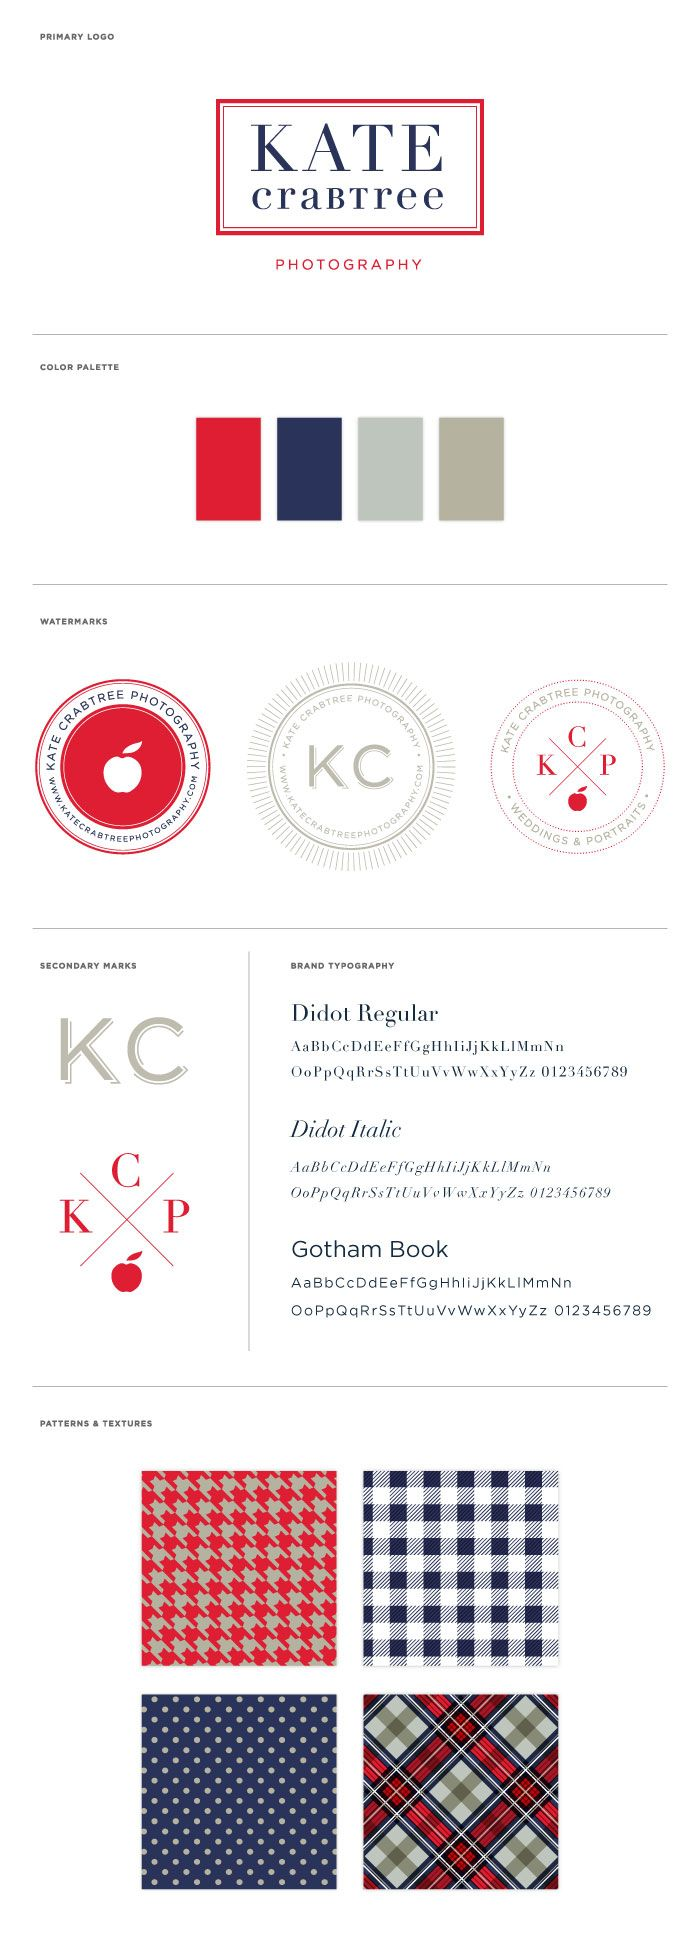 Very nice example of all the elements that should be presented for a new identity project.  Kate Crabtree Photography Logo and Identity Design Brand Board